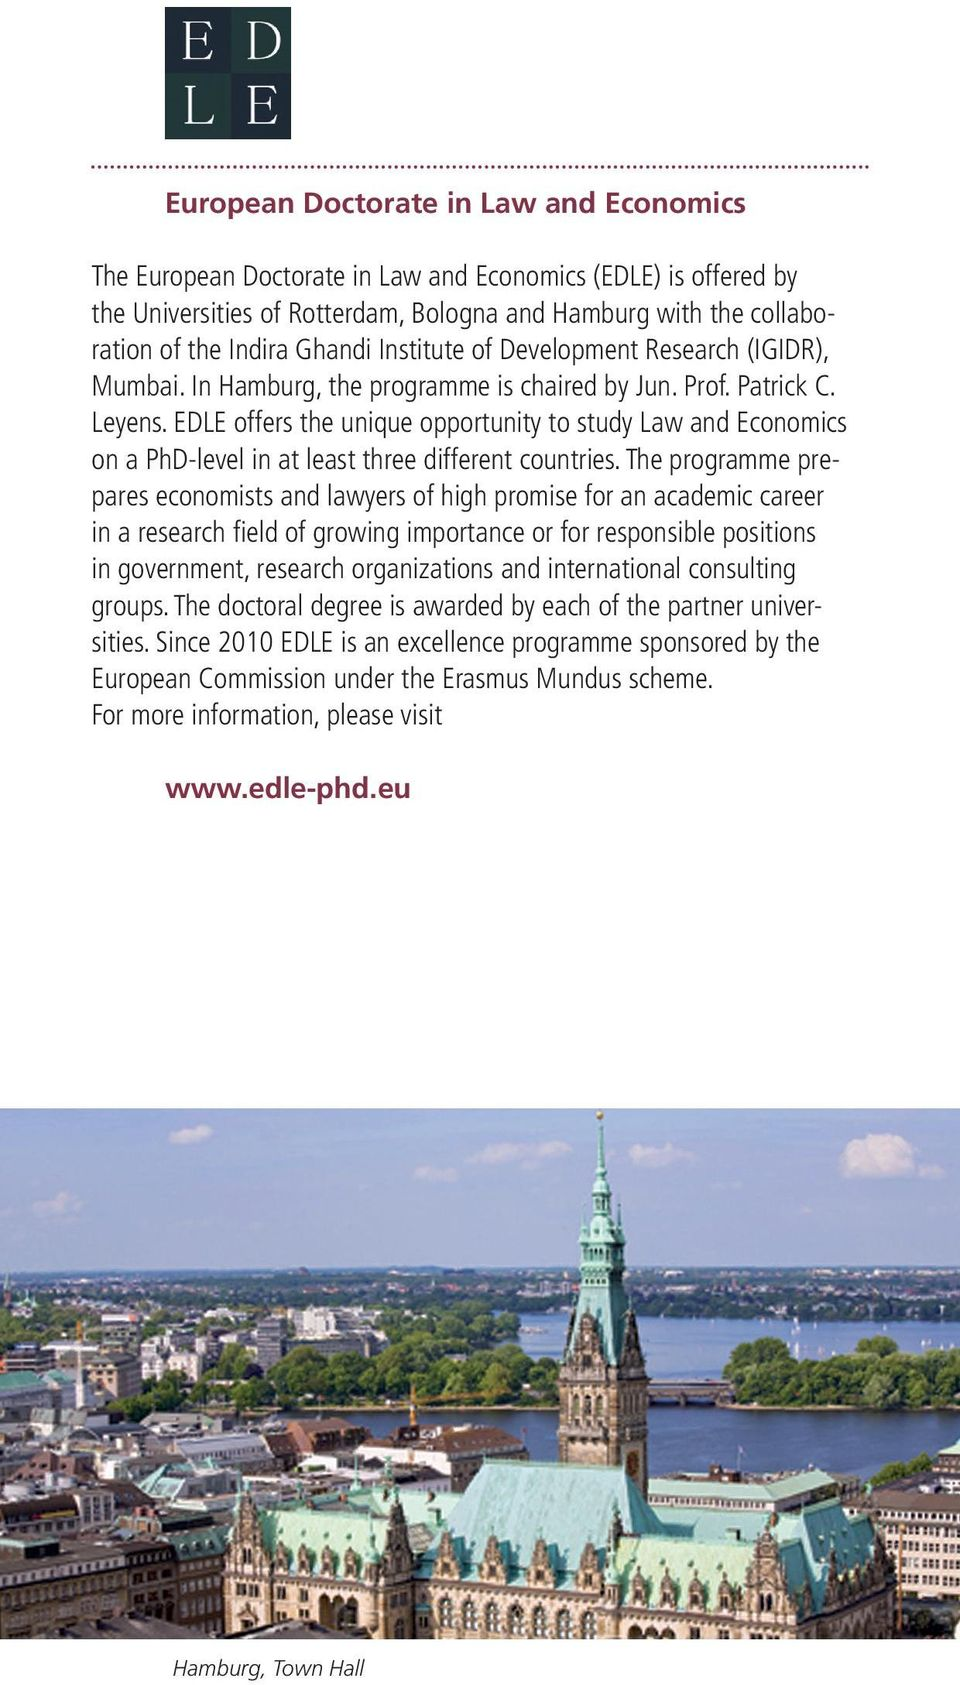 EDLE offers the unique opportunity to study Law and Economics on a PhD-level in at least three different countries.